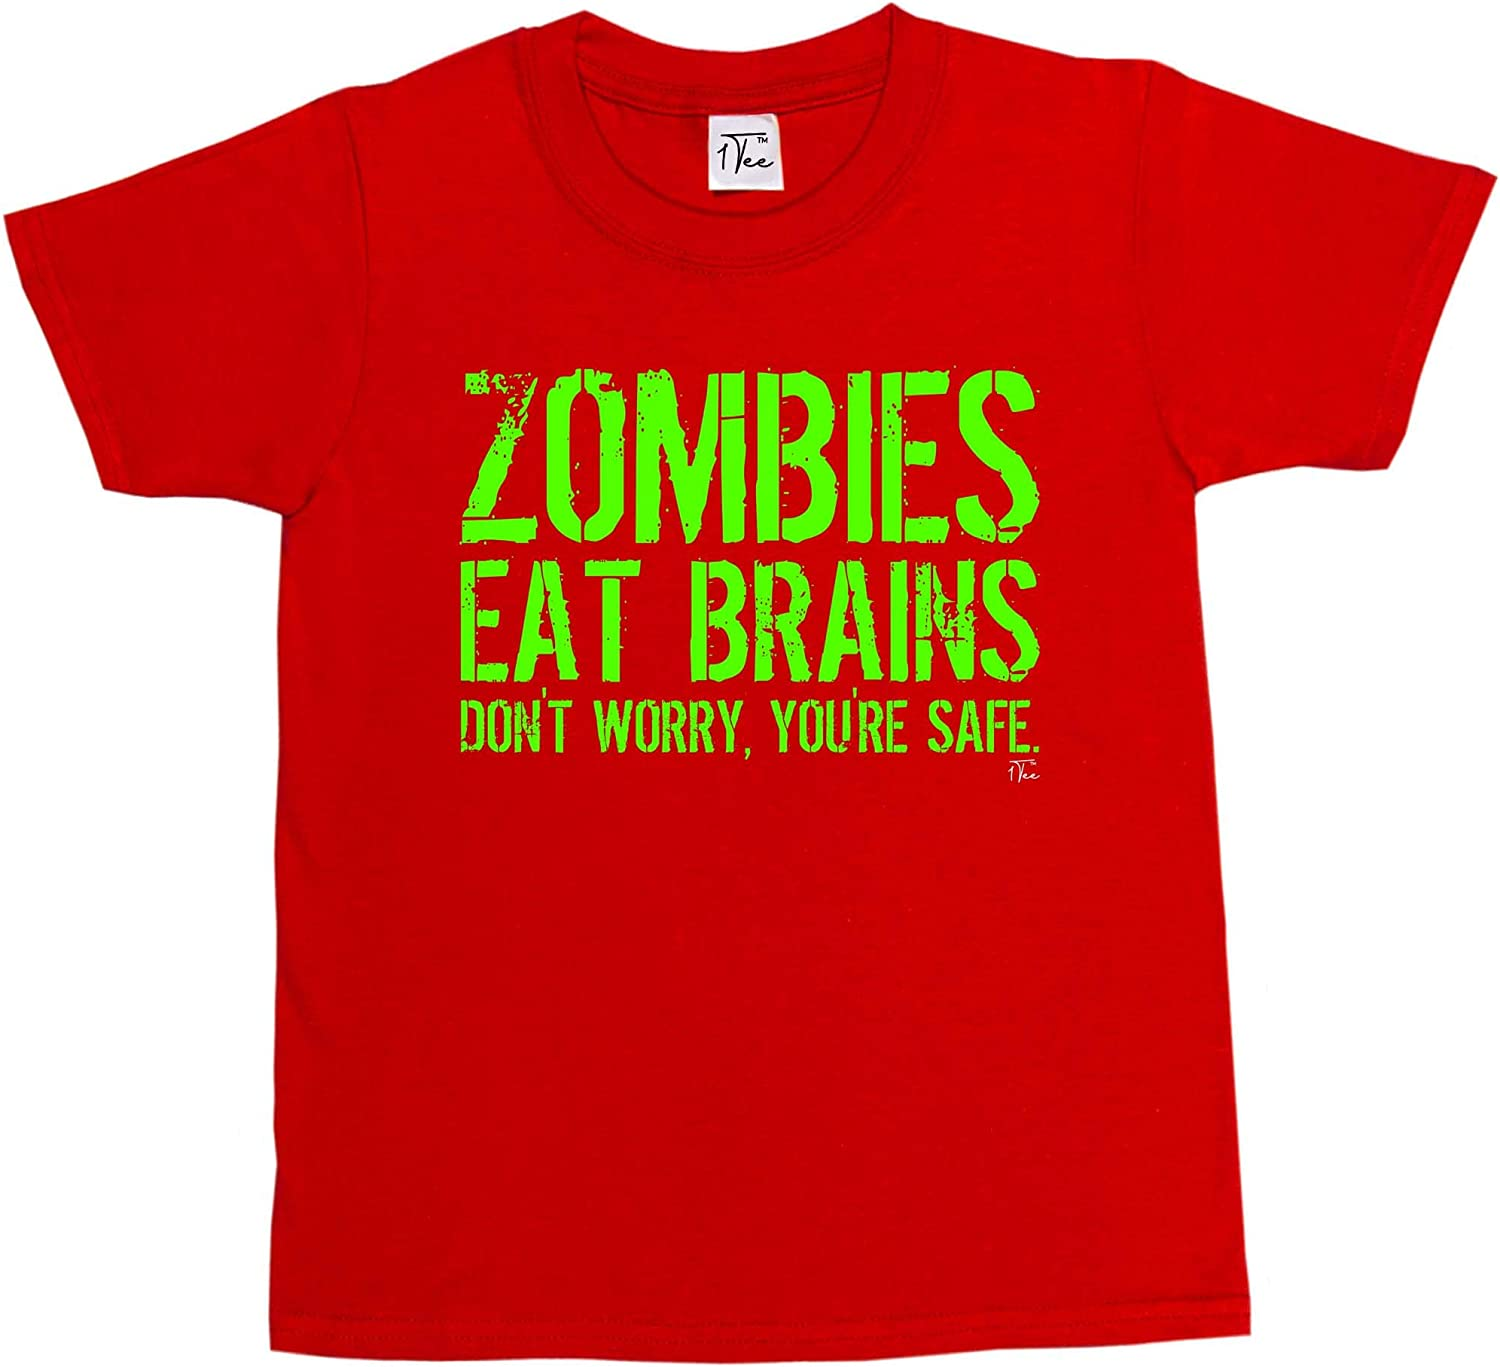 Dont Worry Youre Safe T-Shirt 1Tee Girls Zombies Eat Brains